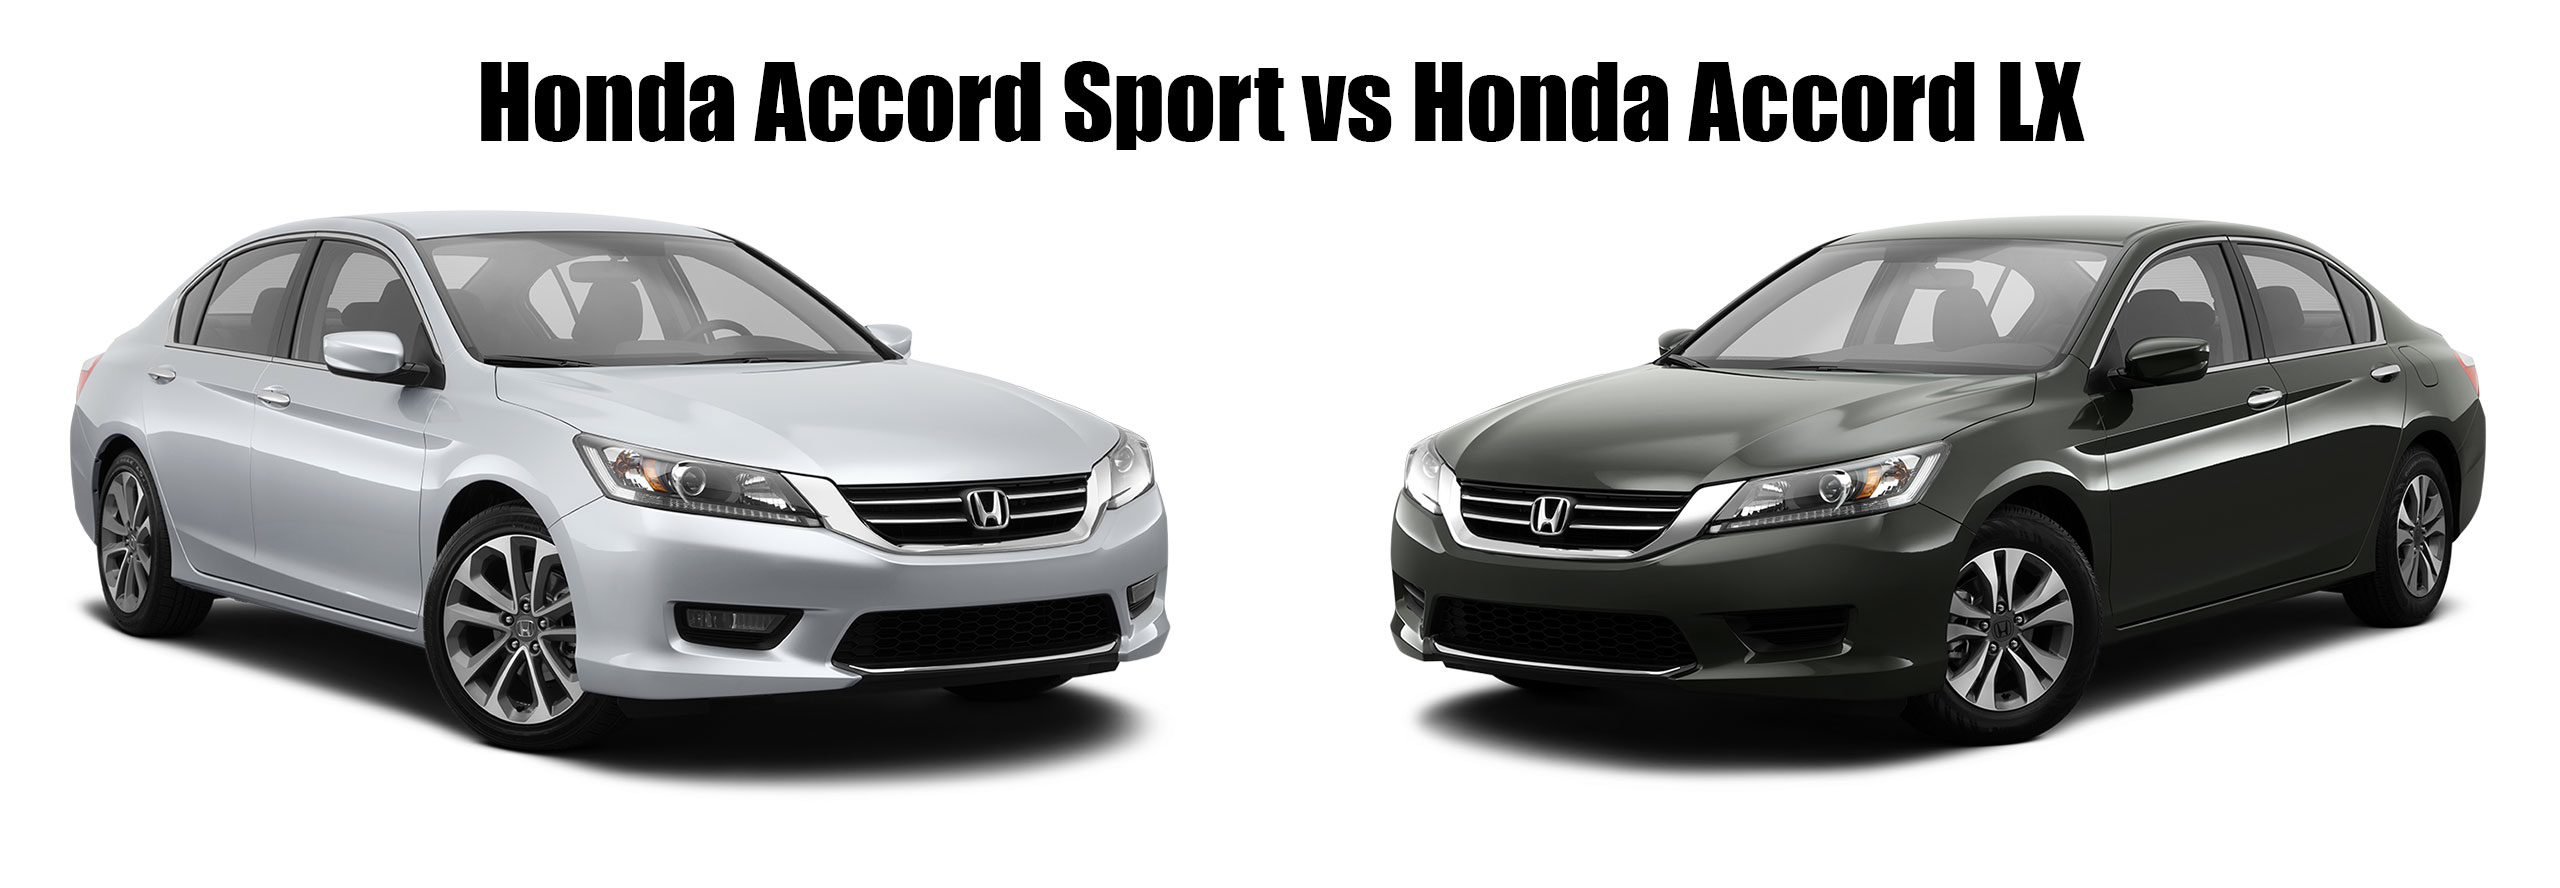 Honda accord sport vs honda accord lx brannon honda for Honda accord vs honda civic